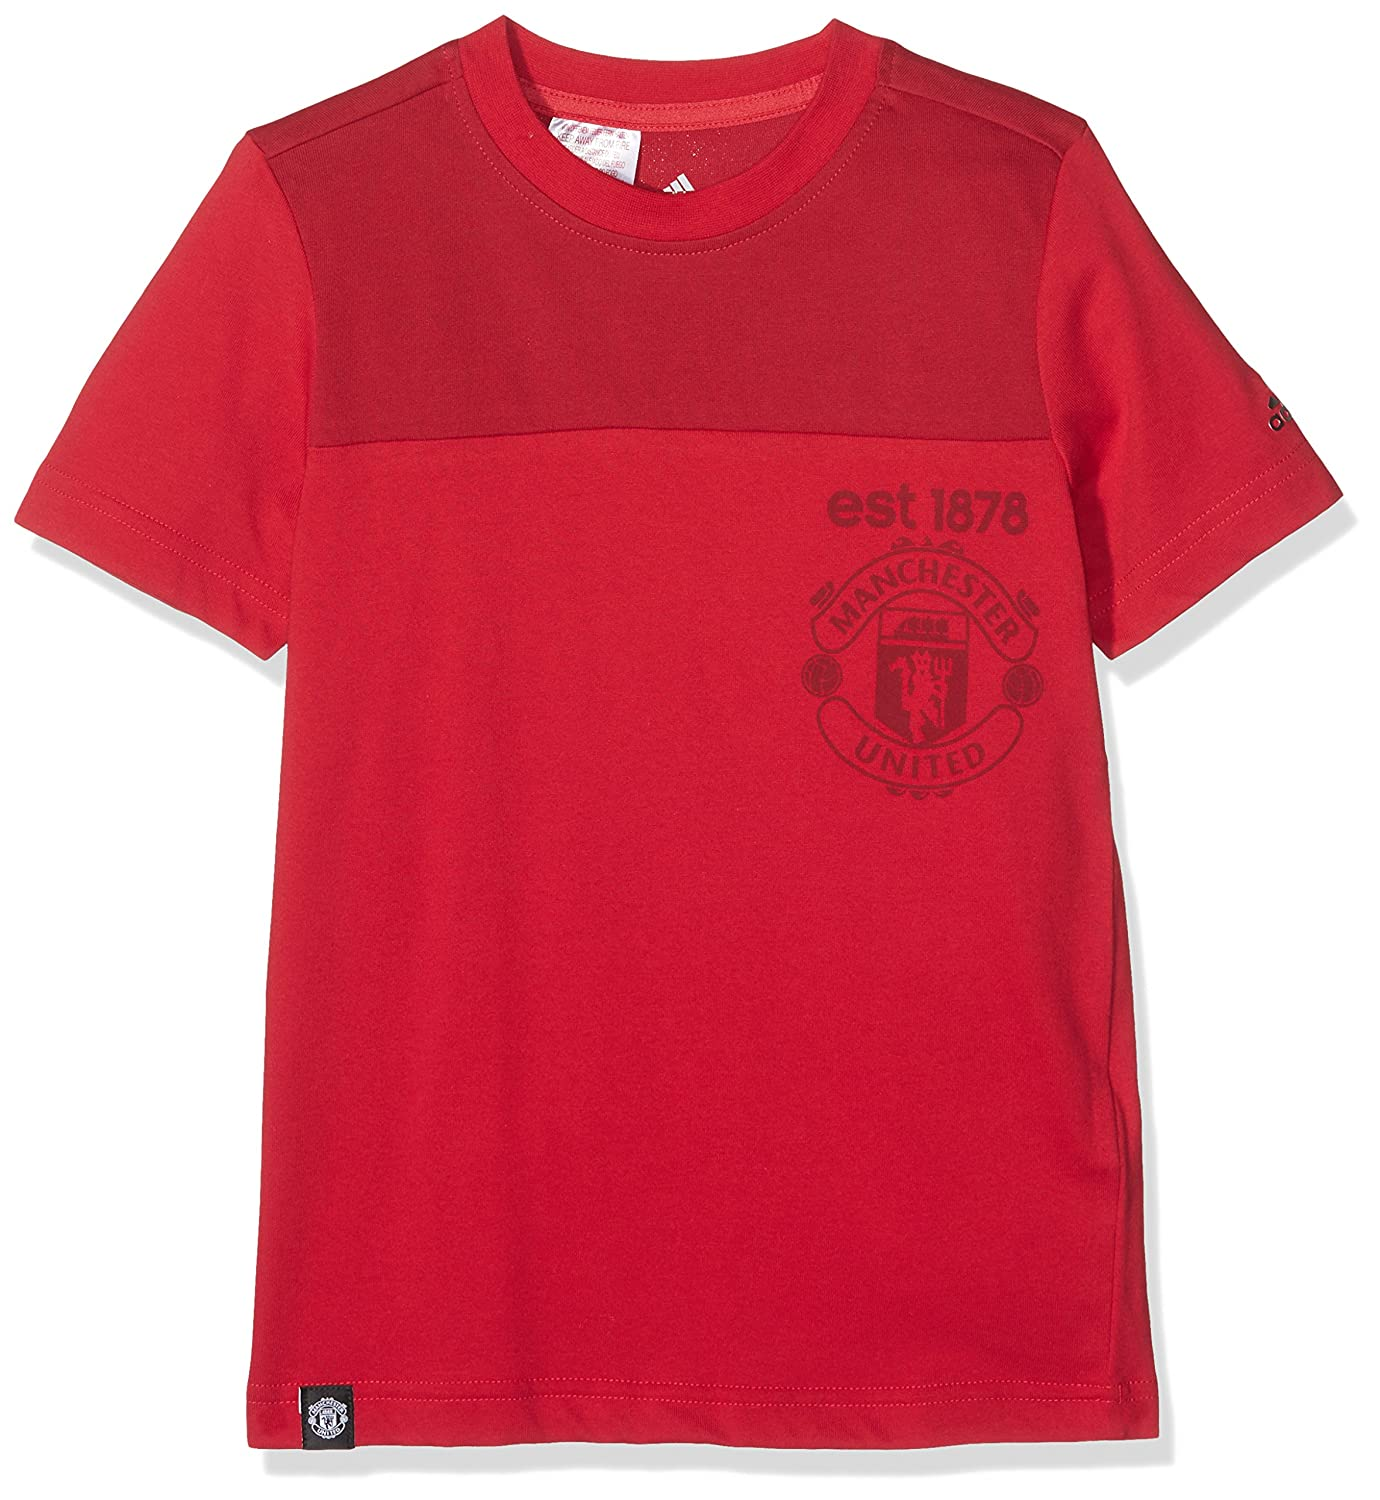 465a357ae71 Amazon.com  adidas Boys T-Shirts Football Manchester United FC Red Kids Tee  Training AY6819 (140-10 Years)  Clothing